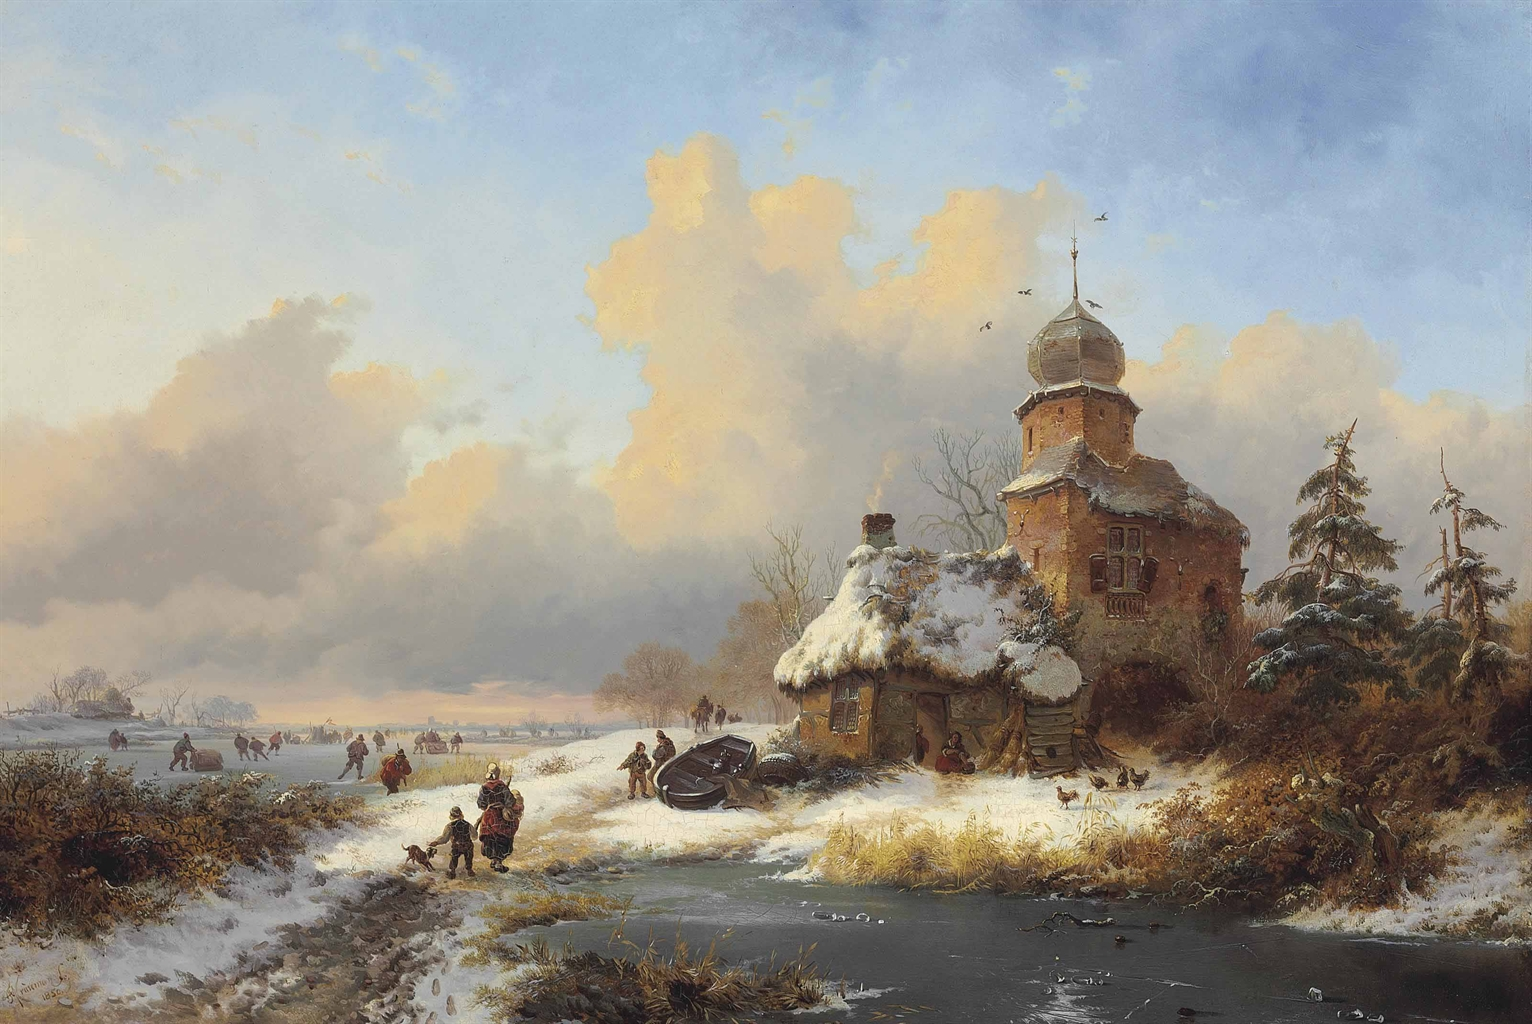 Frederik Marinus Kruseman – private collection.  Title: Winter Landscape with Ice Amusements on a Frozen River. Date: 1850. Materials: oil on panel. Dimensions: 41.2 x 59.6 cm.  Inscriptions: FMKruseman.fc/1850.' (lower left). Sold by Christie's in New York, on April 28, 2015. Source: http://www.christies.com/lotfinderimages/d58893/d5889381a.jpg.